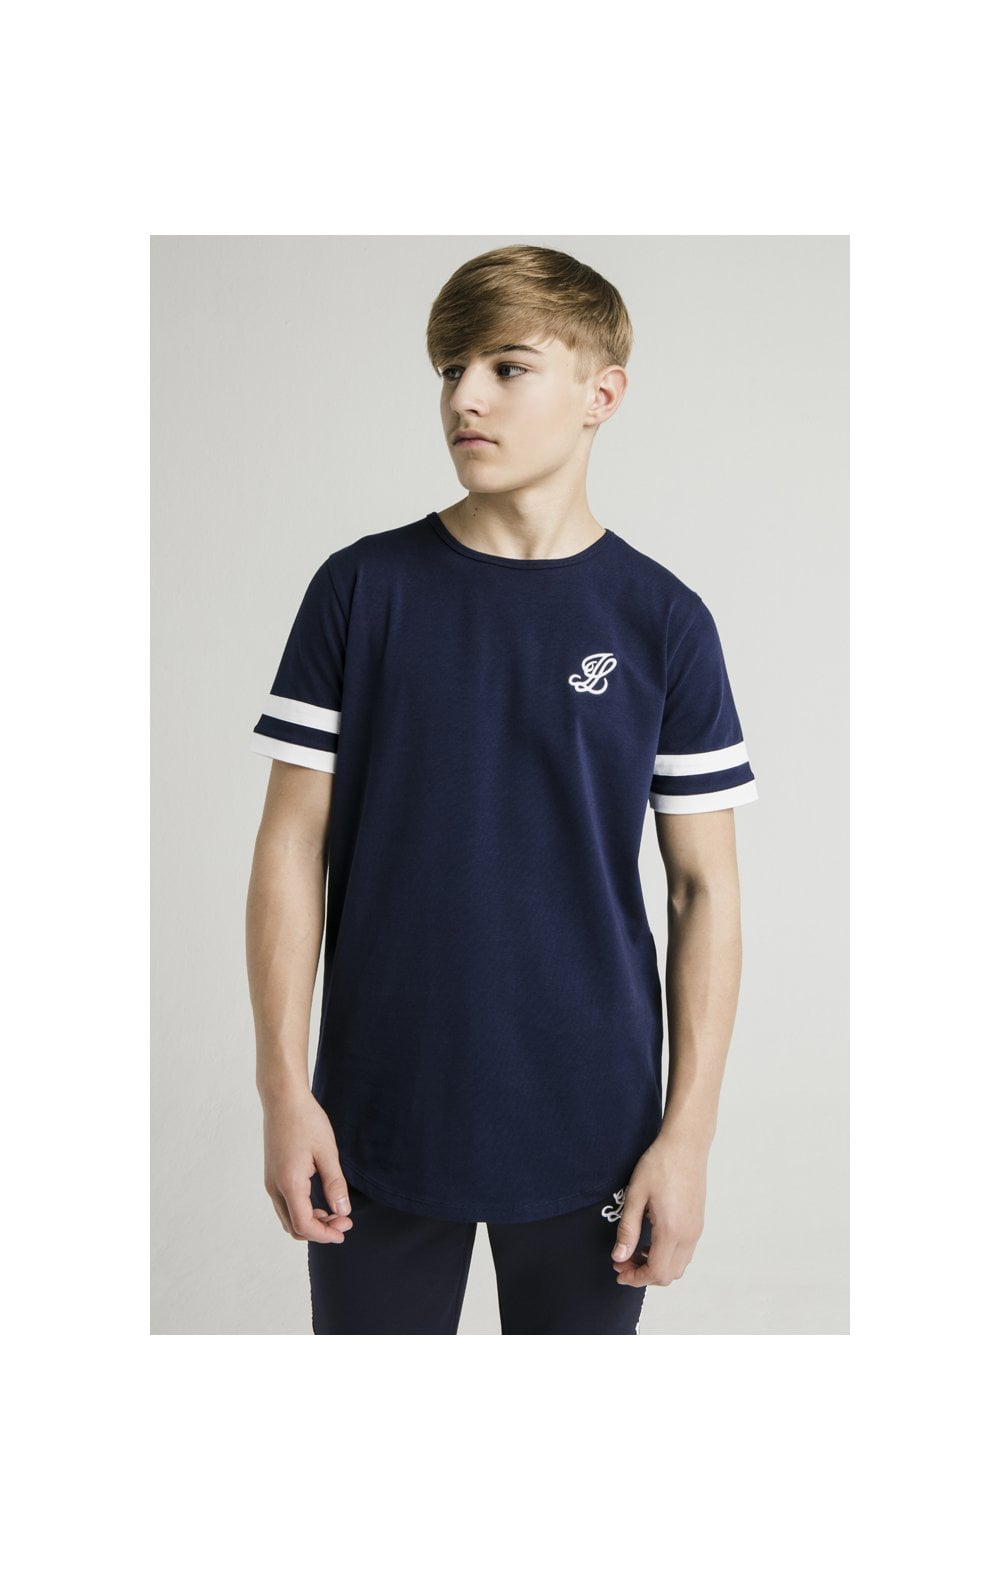 Load image into Gallery viewer, Illusive London Tournament Tee - Navy & White (1)